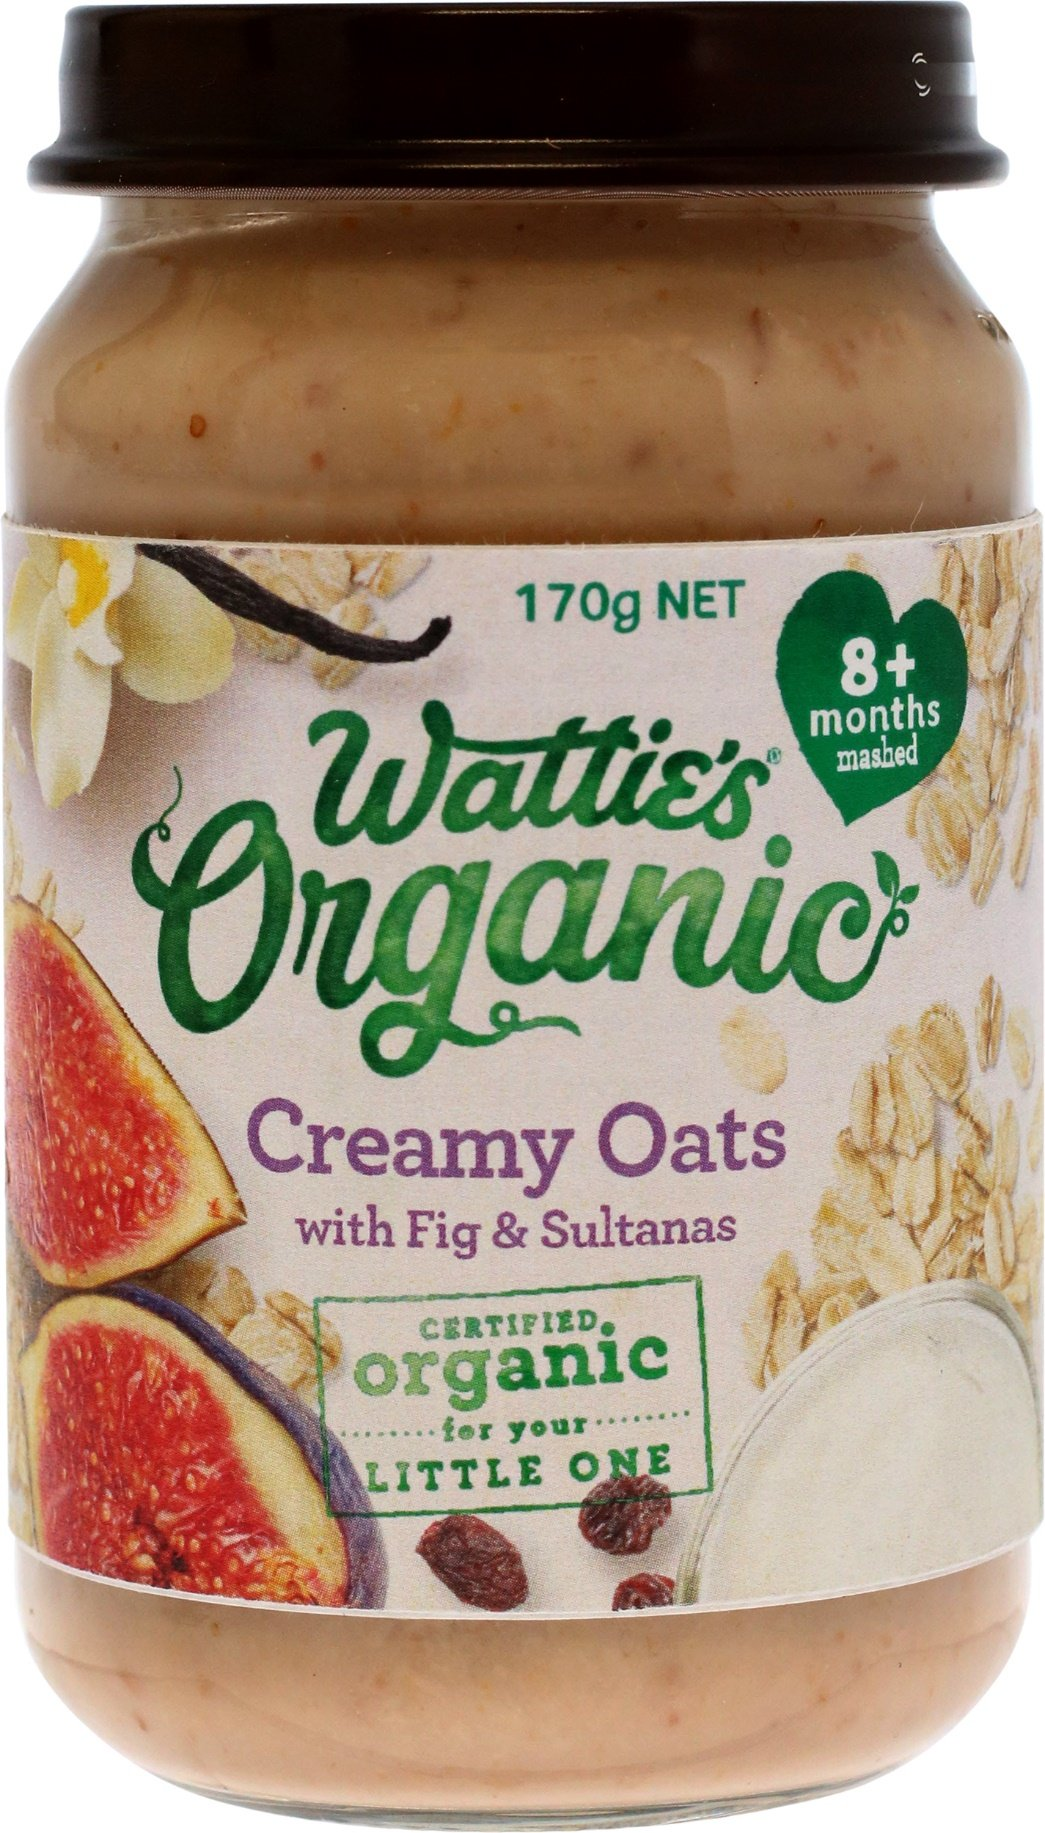 Wattie's Organic Creamy Oats with Fig & Sultanas